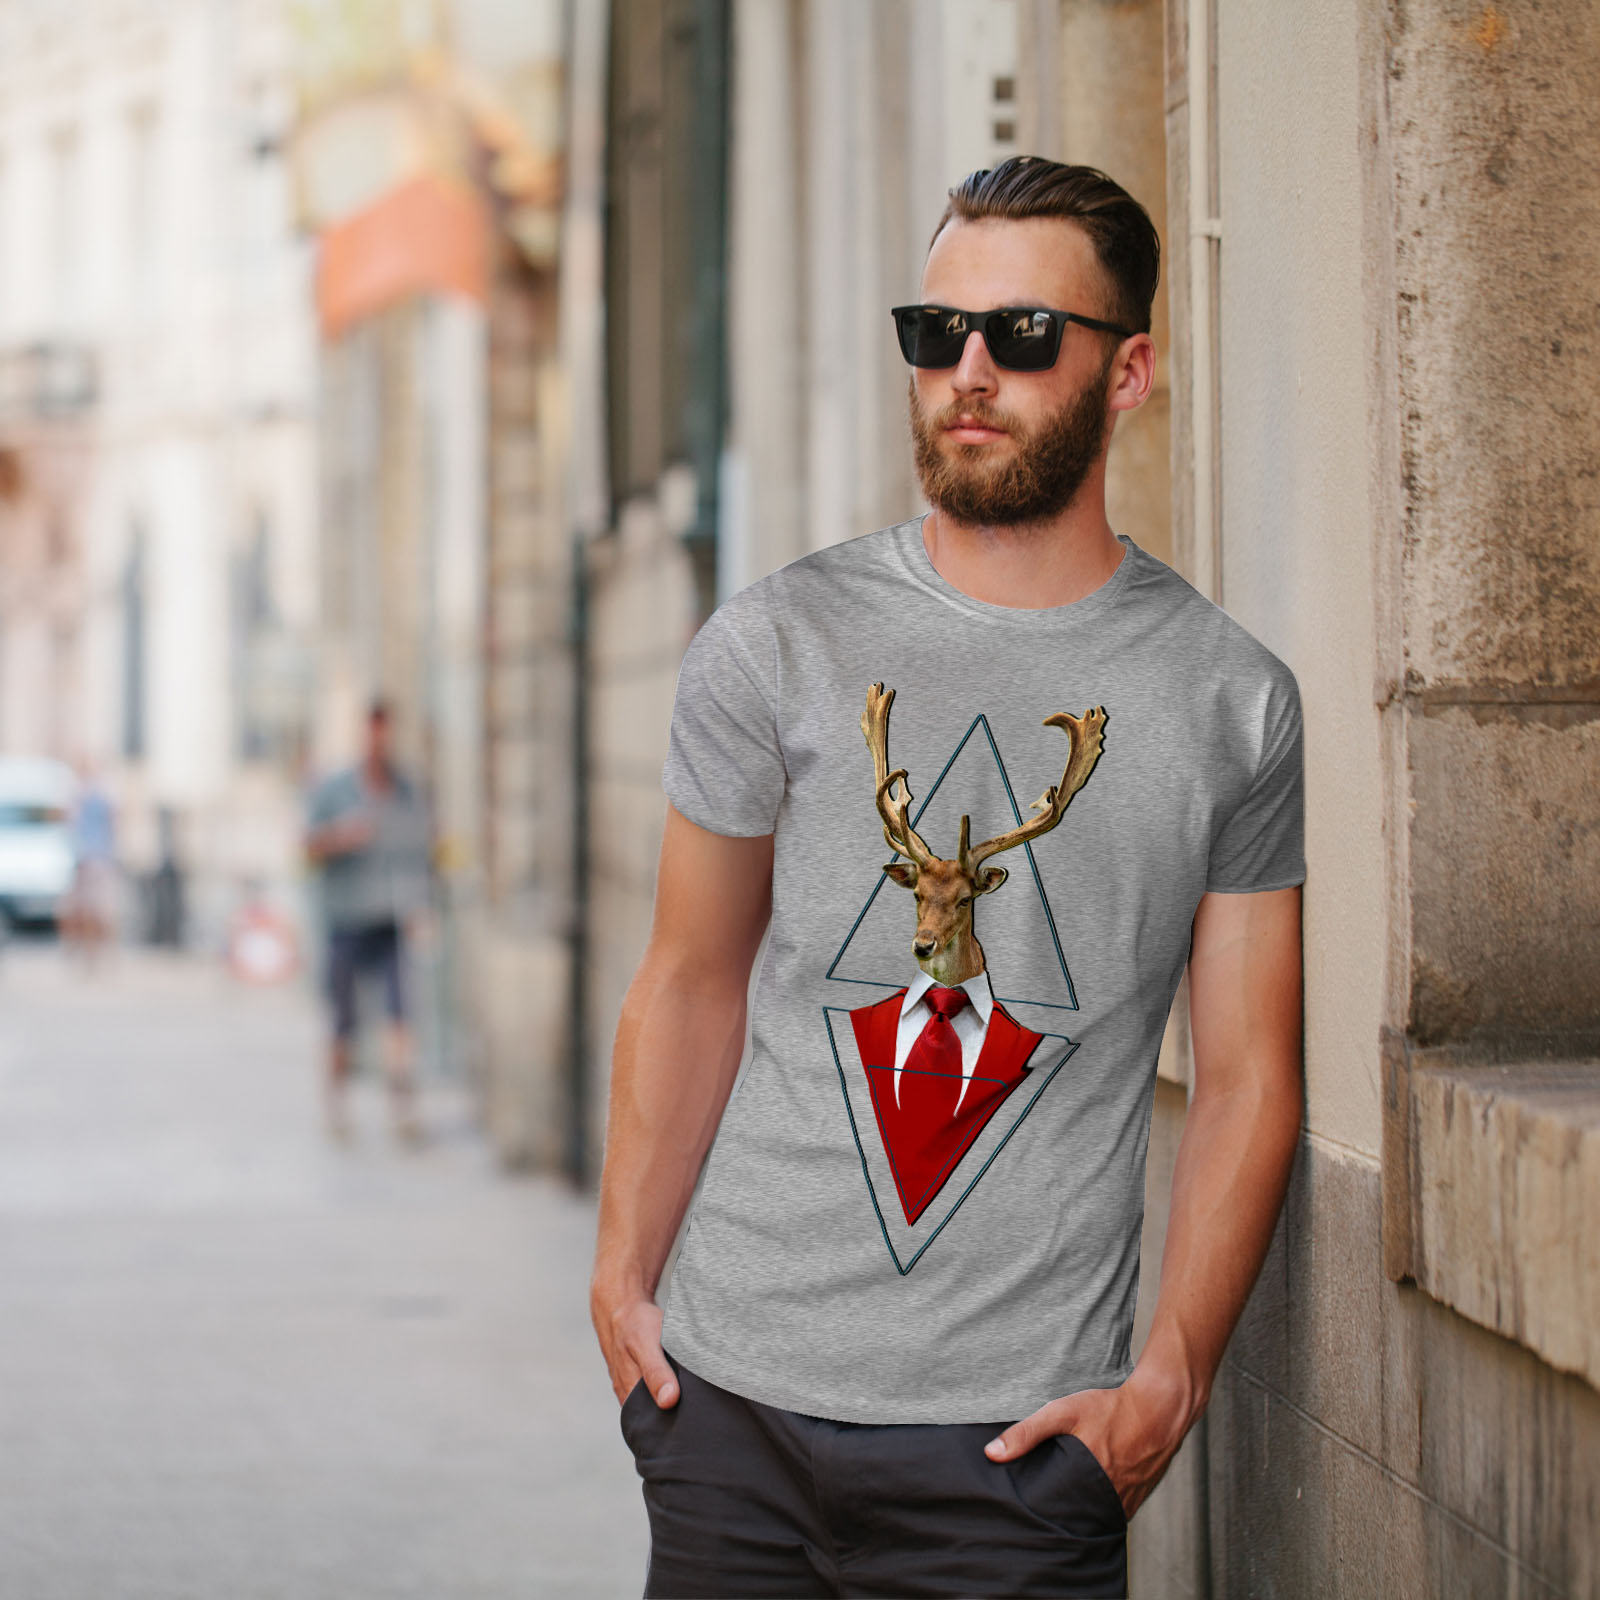 Wellcoda-Abstract-Animal-T-shirt-Homme-chic-design-graphique-imprime-Tee miniature 17